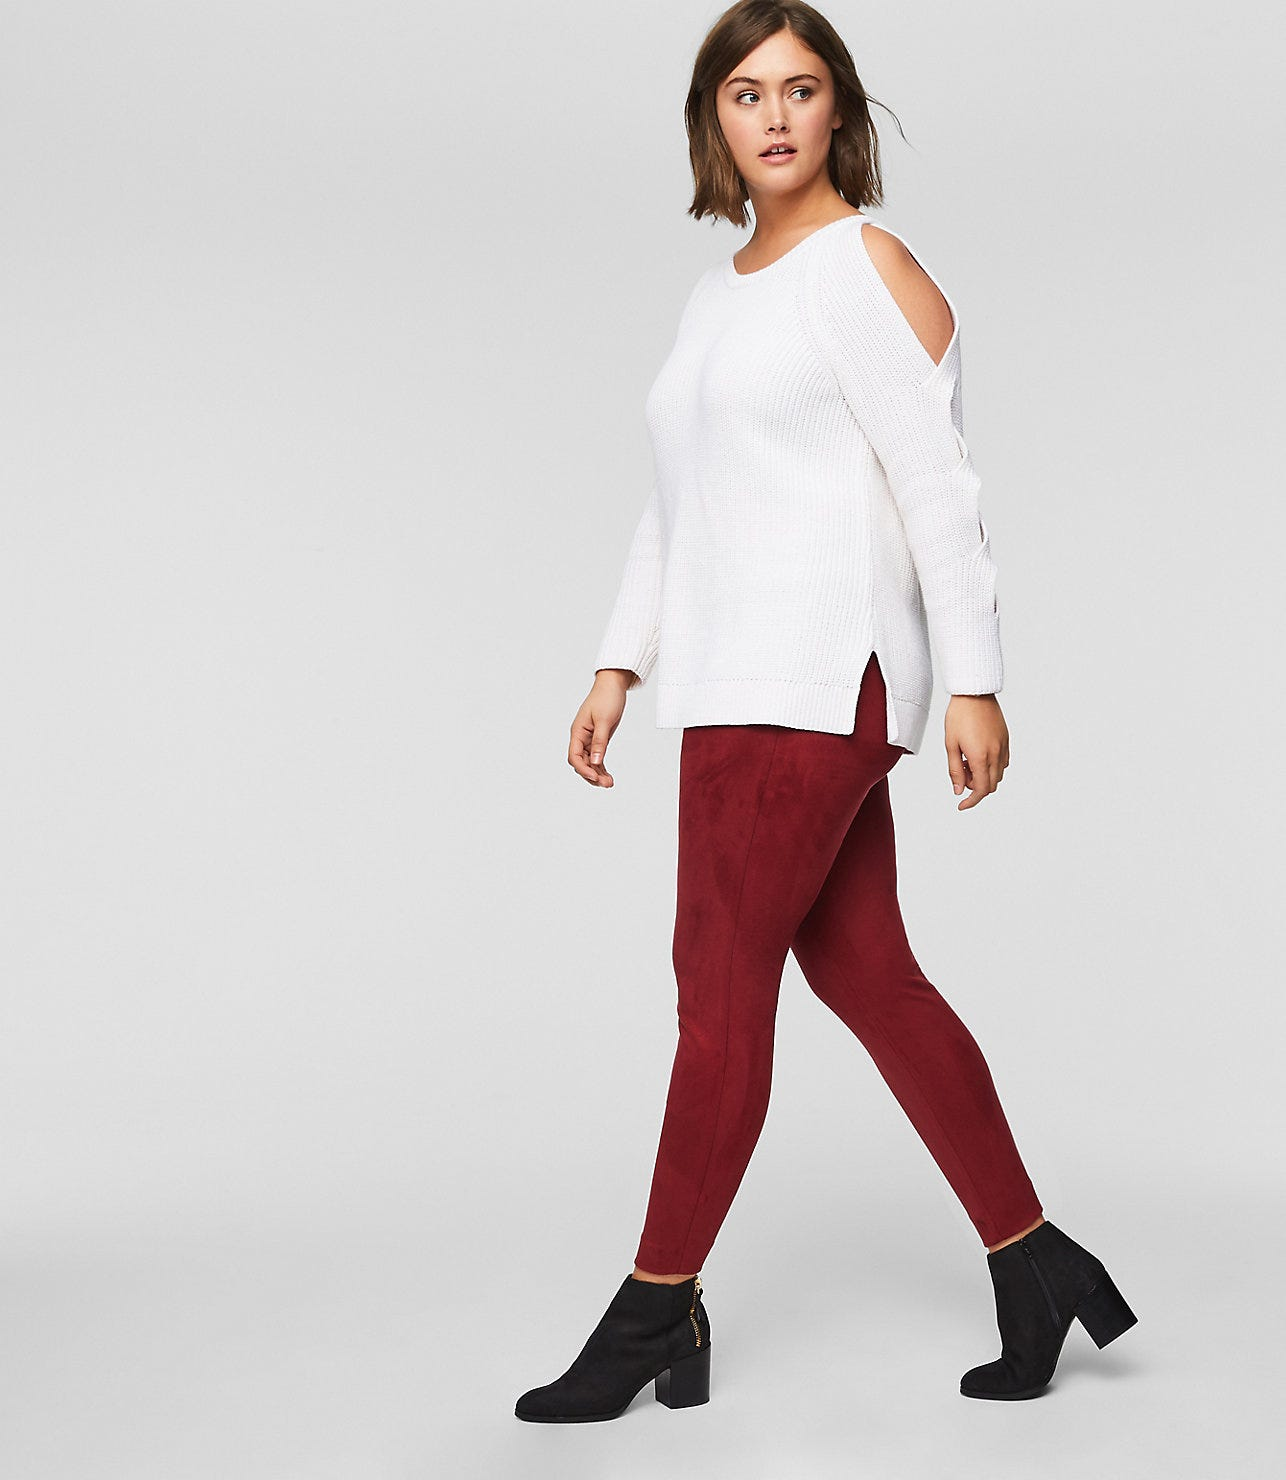 877947f792d Loft Launches First-Plus Size Collection